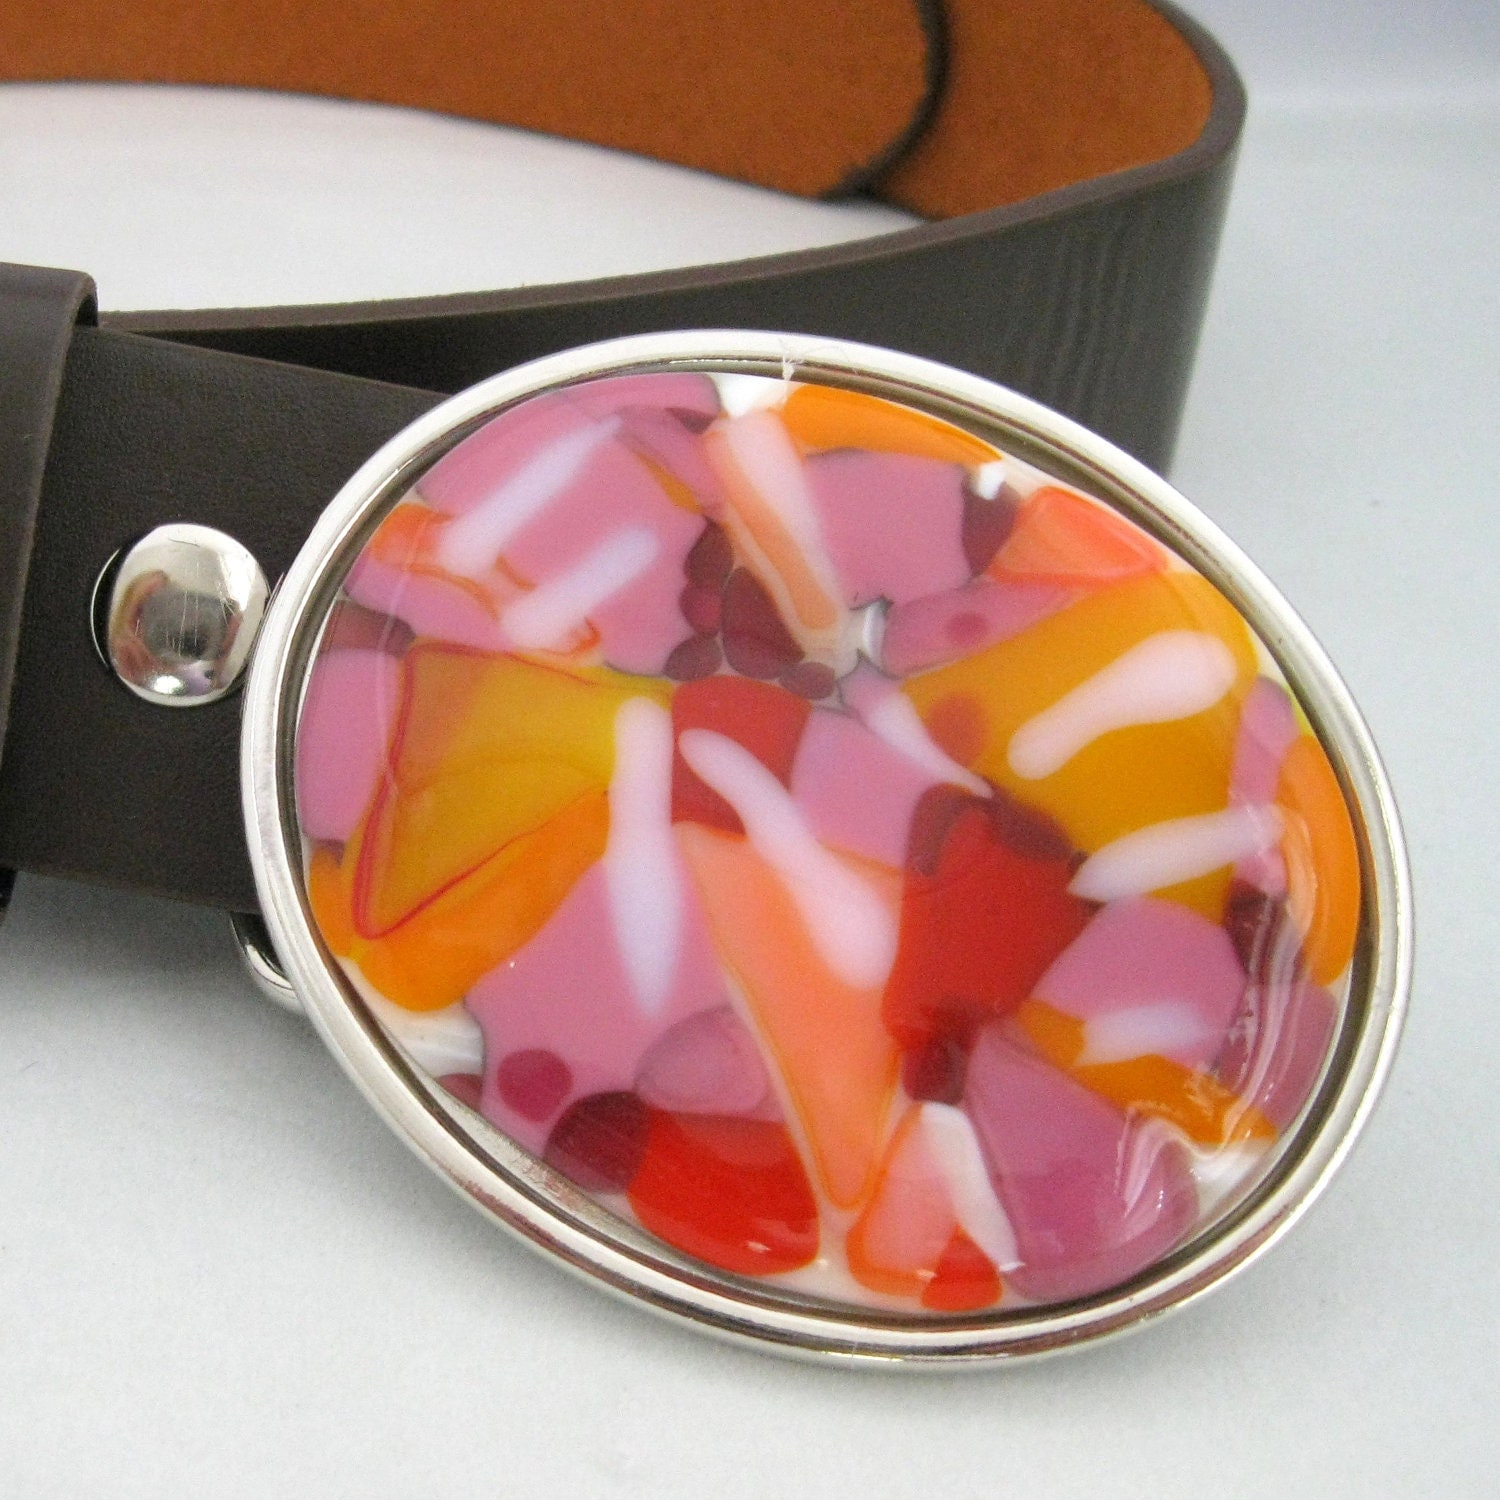 summer fashion  - Sugar Pie belt, lovely, tangerine, hot pink, handmade belt buckle for women, abstract, bright colors